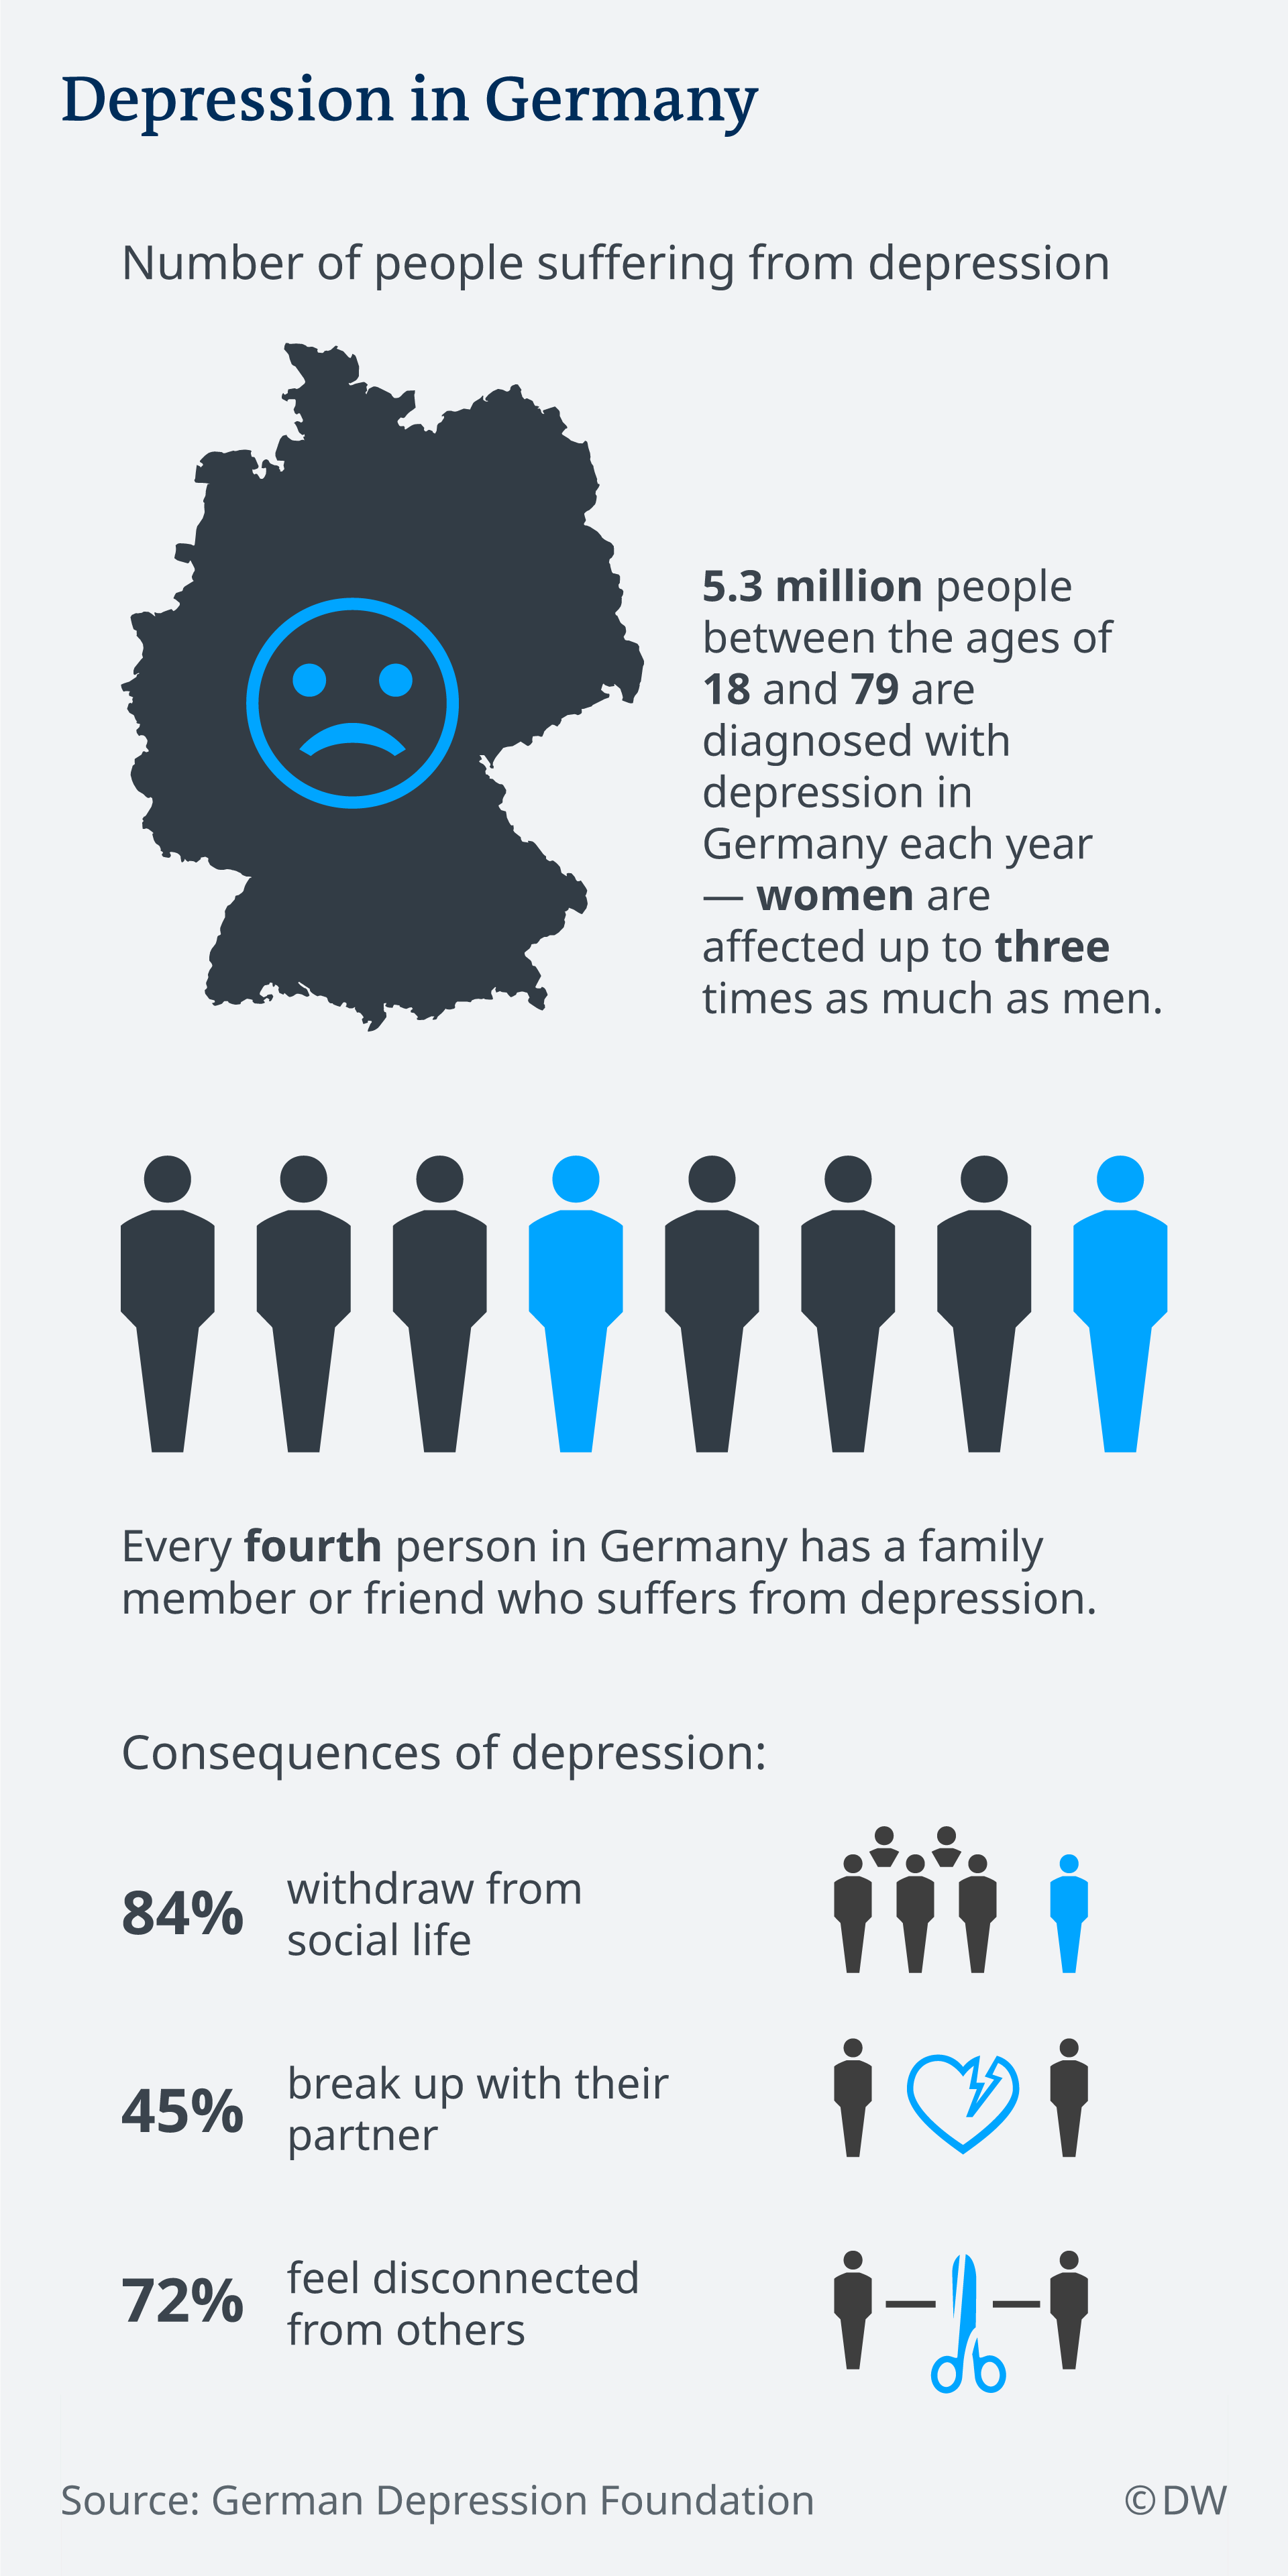 A graphic showing depression in Germany